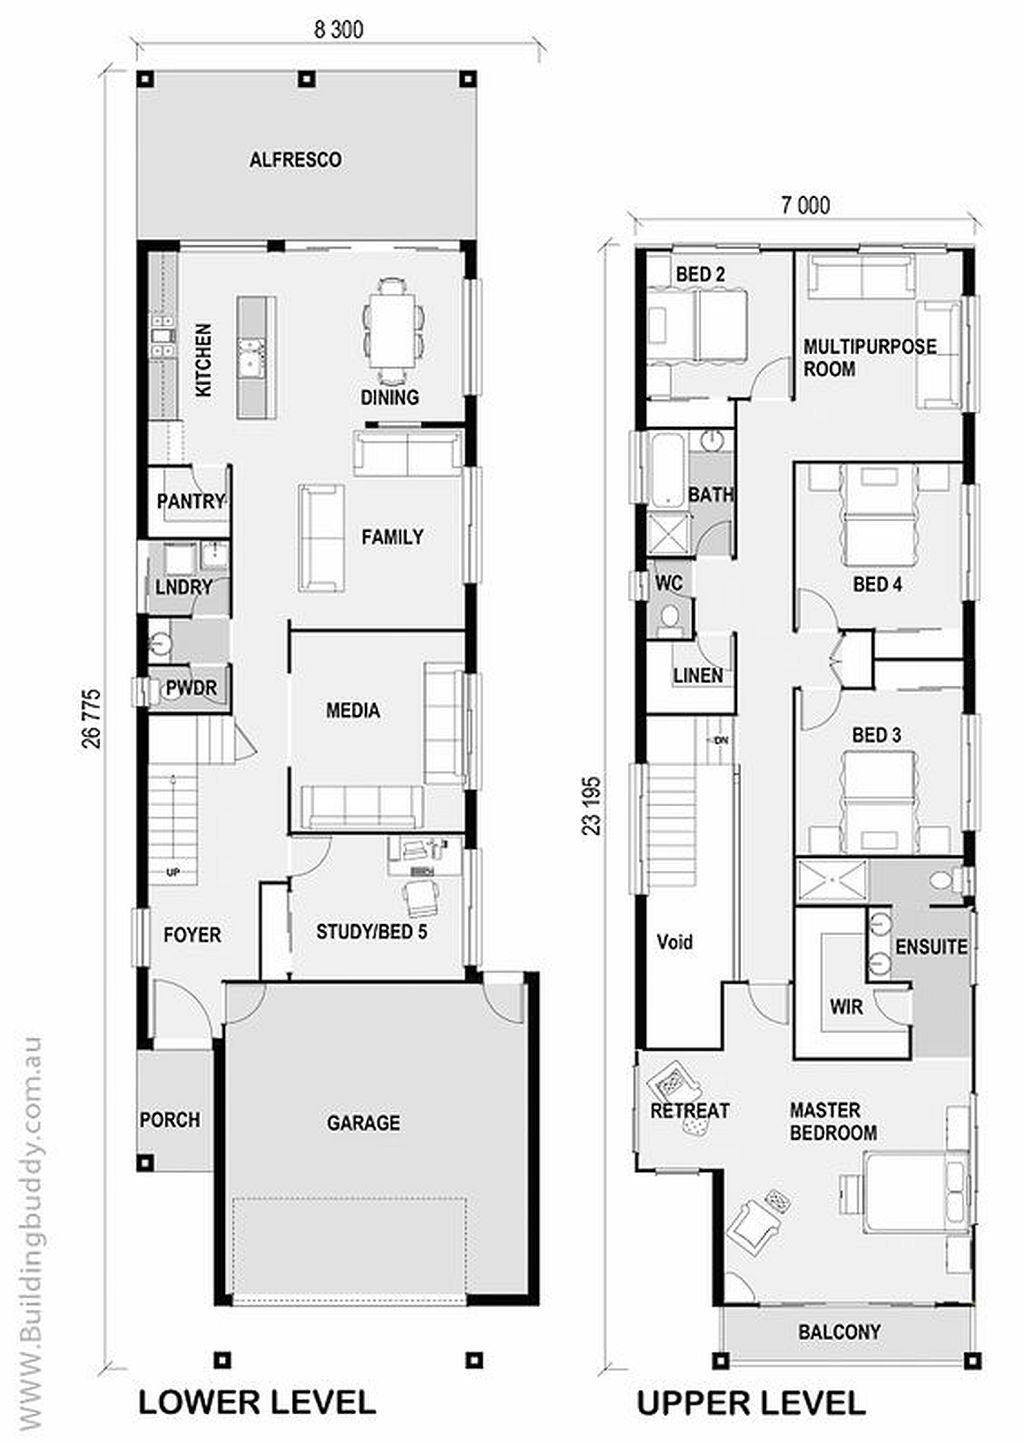 Gorgeous 87 Shipping Container House Plans Ideas | Narrow ... on narrow house layout, narrow bedroom, narrow house elevations, narrow home, narrow beach house, narrow art, narrow kitchens, narrow house interior design, narrow house roof, narrow doors, small lake lot plans, narrow windows, narrow sink, narrow 3 story house, narrow modern house, narrow cabinets, narrow lot house, narrow garden, narrow yard landscaping ideas, framing plans,